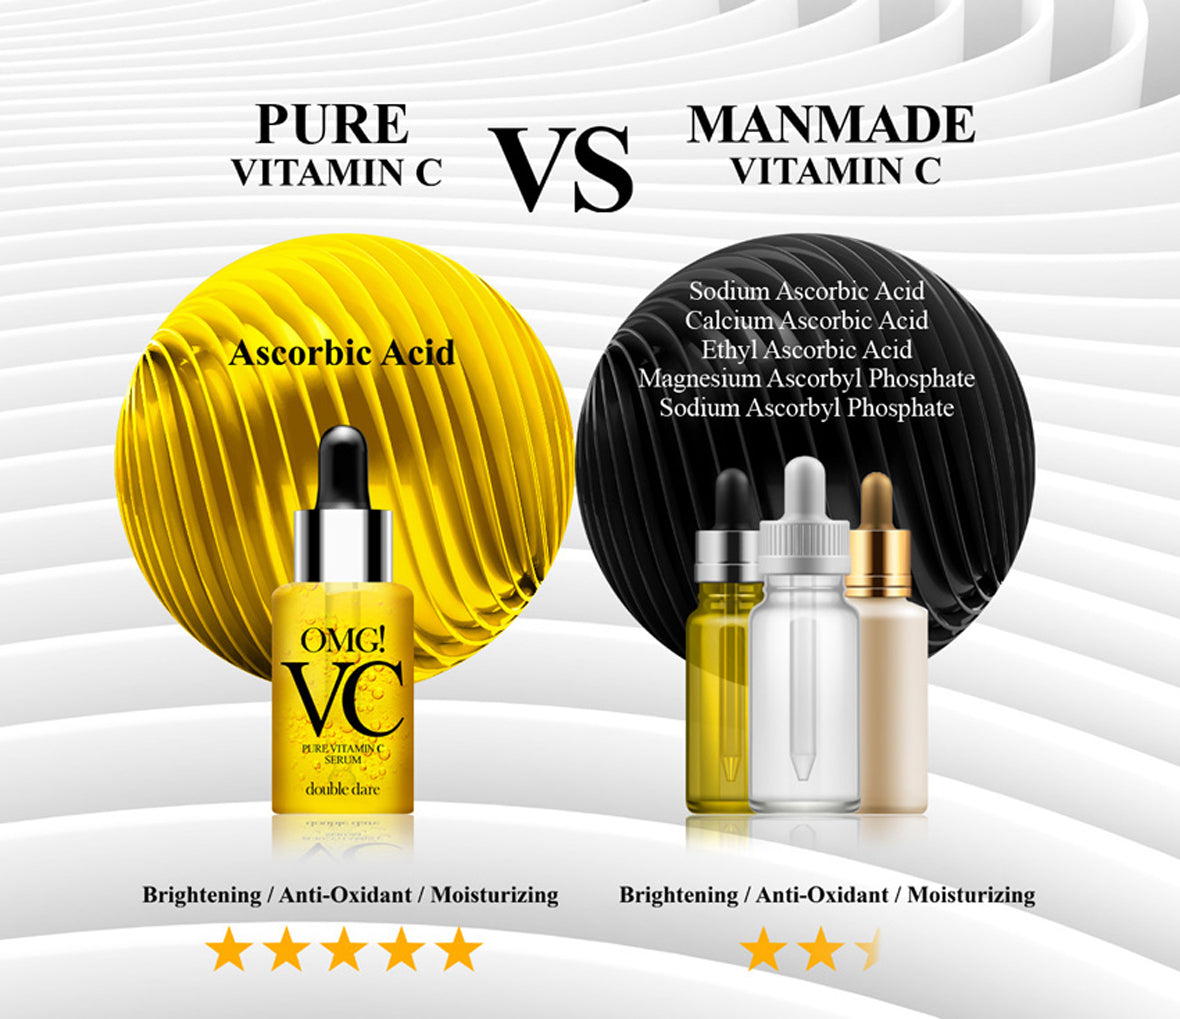 omg! pure vitamin c serum